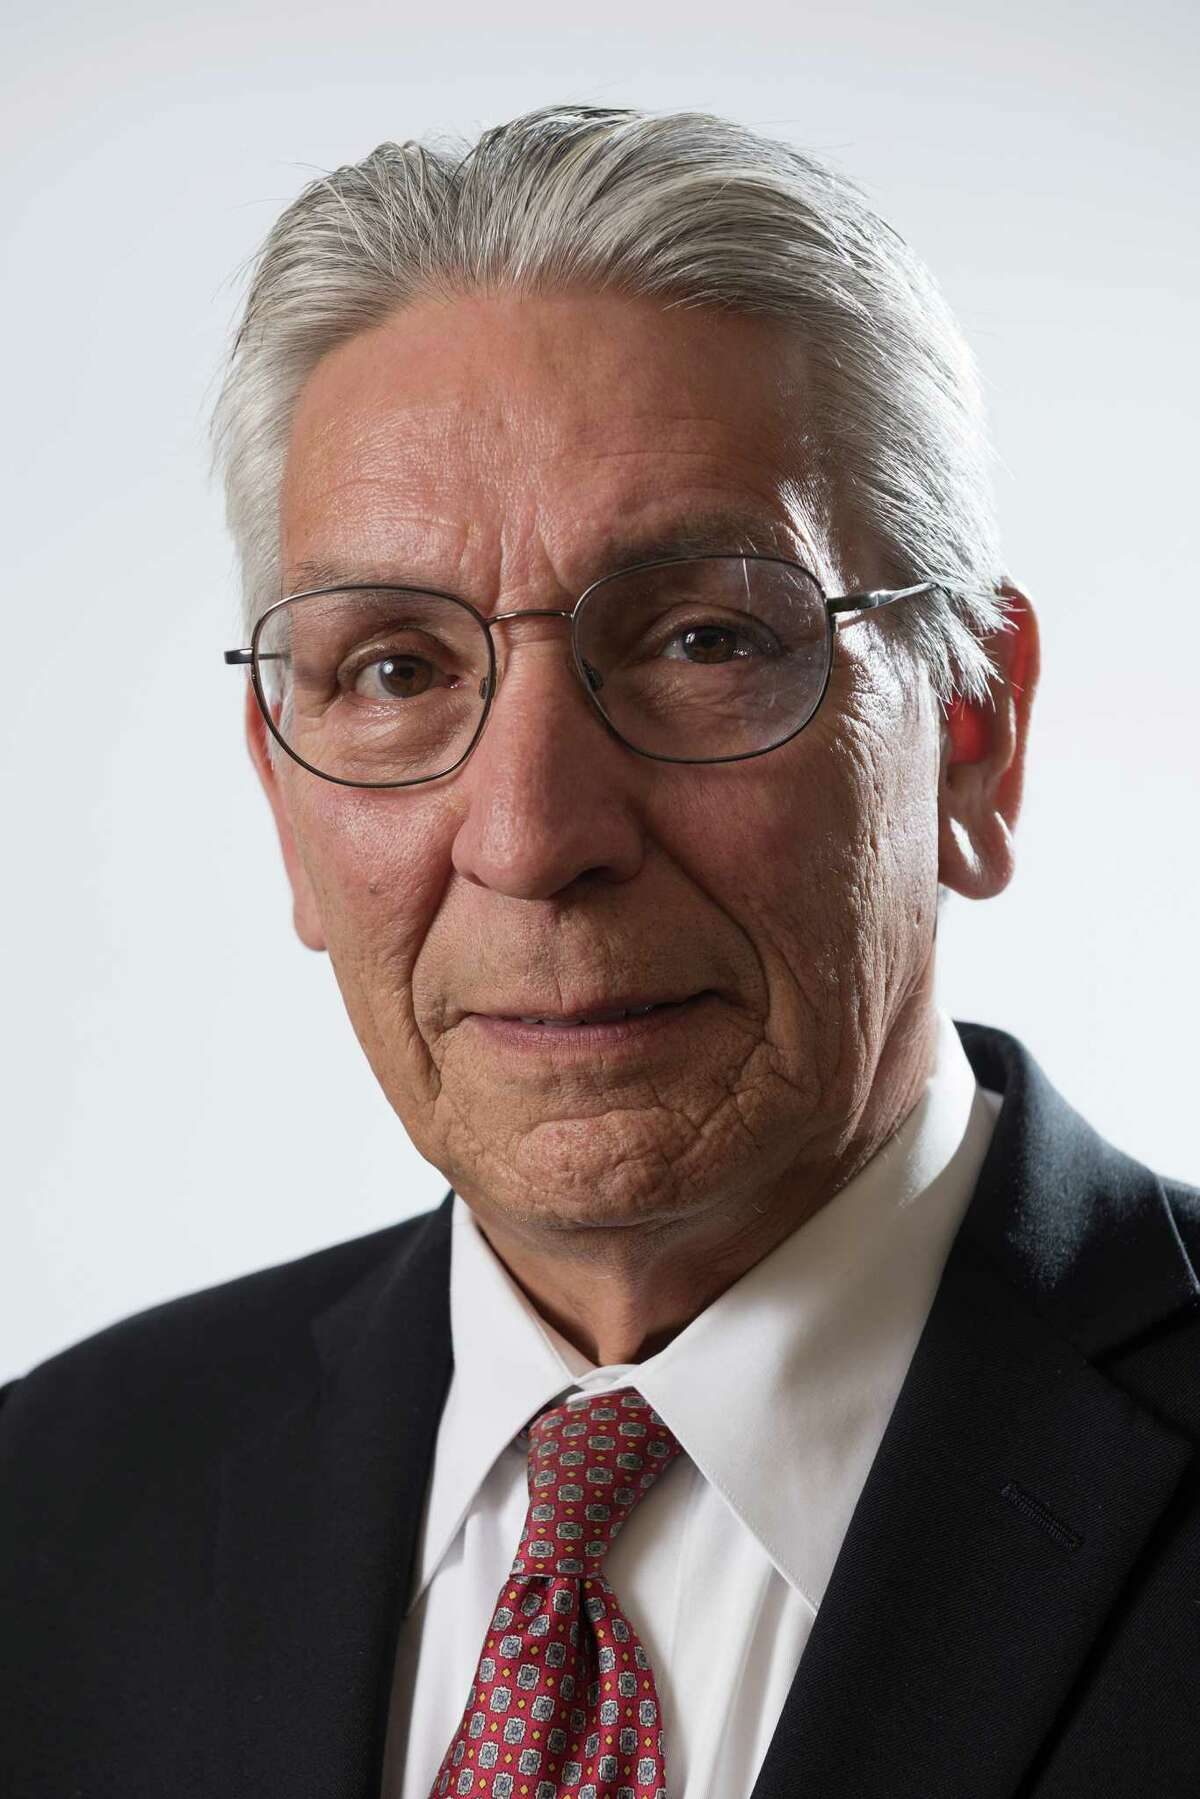 Kevin Gover, pictured in 2016, is the Smithsonian's undersecretary for museums and culture.